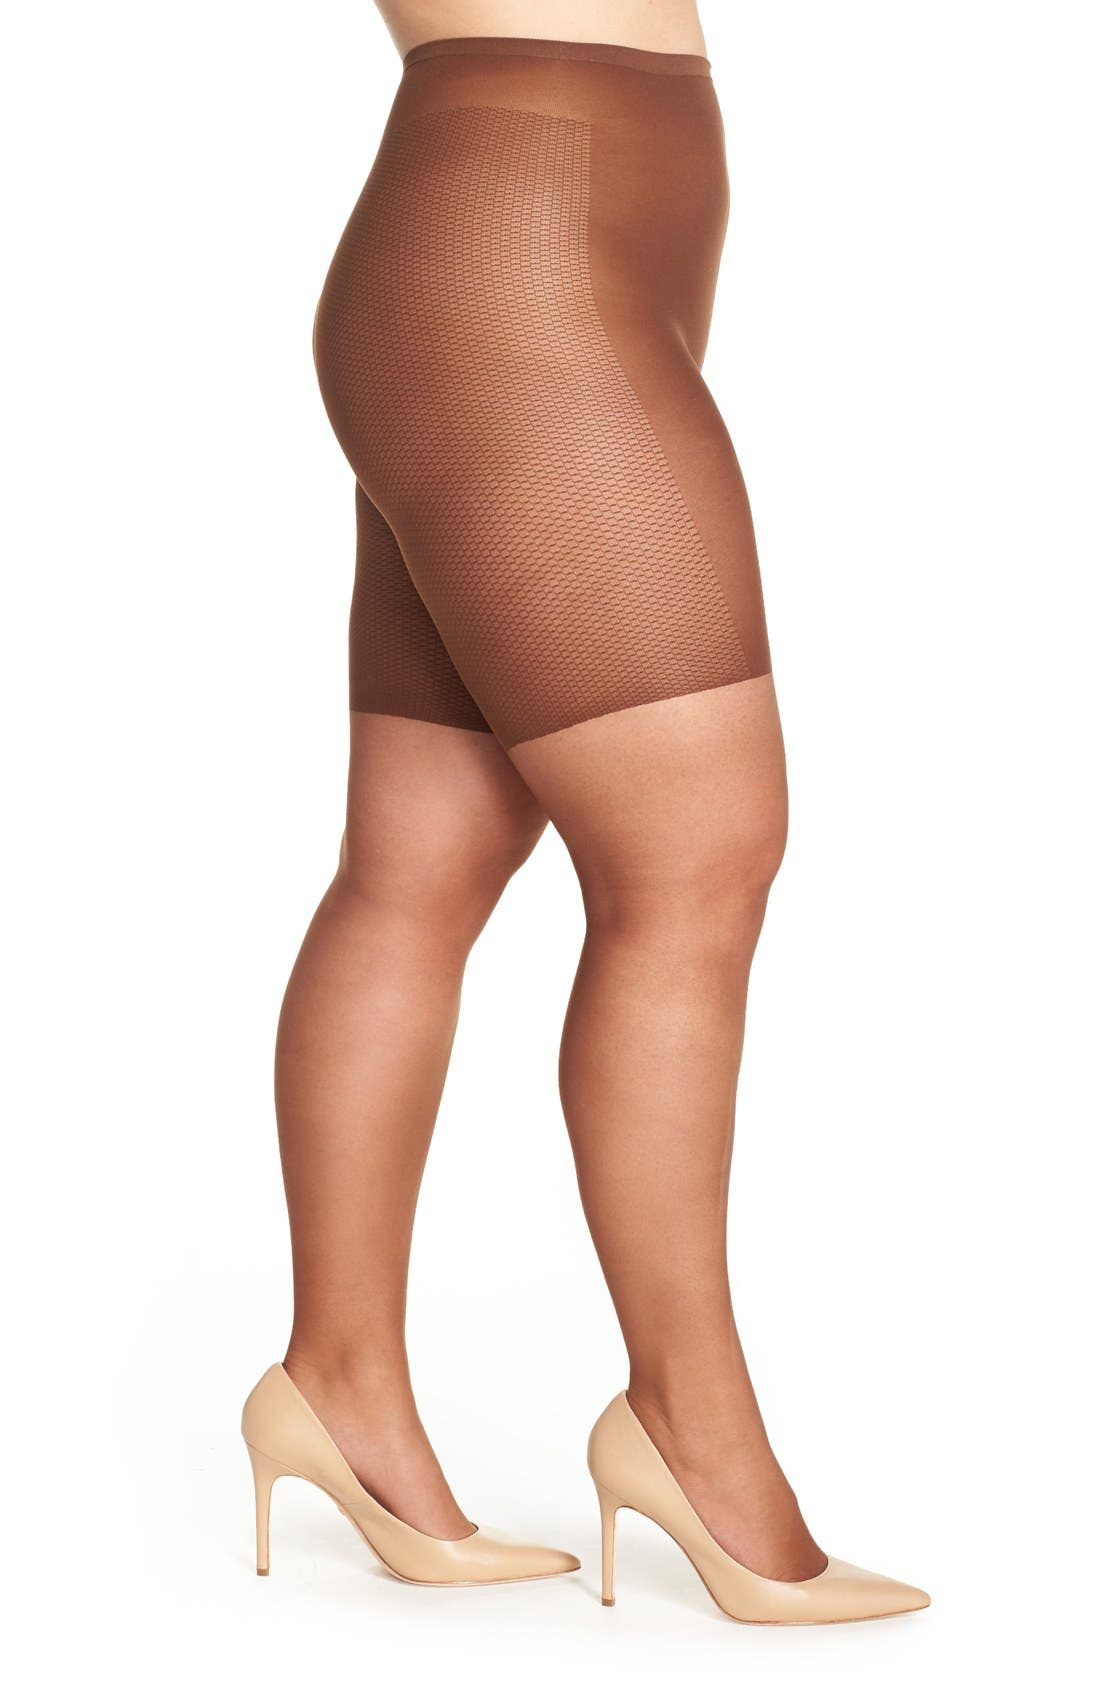 Light Control Top Pantyhose,                         Main,                         color, French Coffee